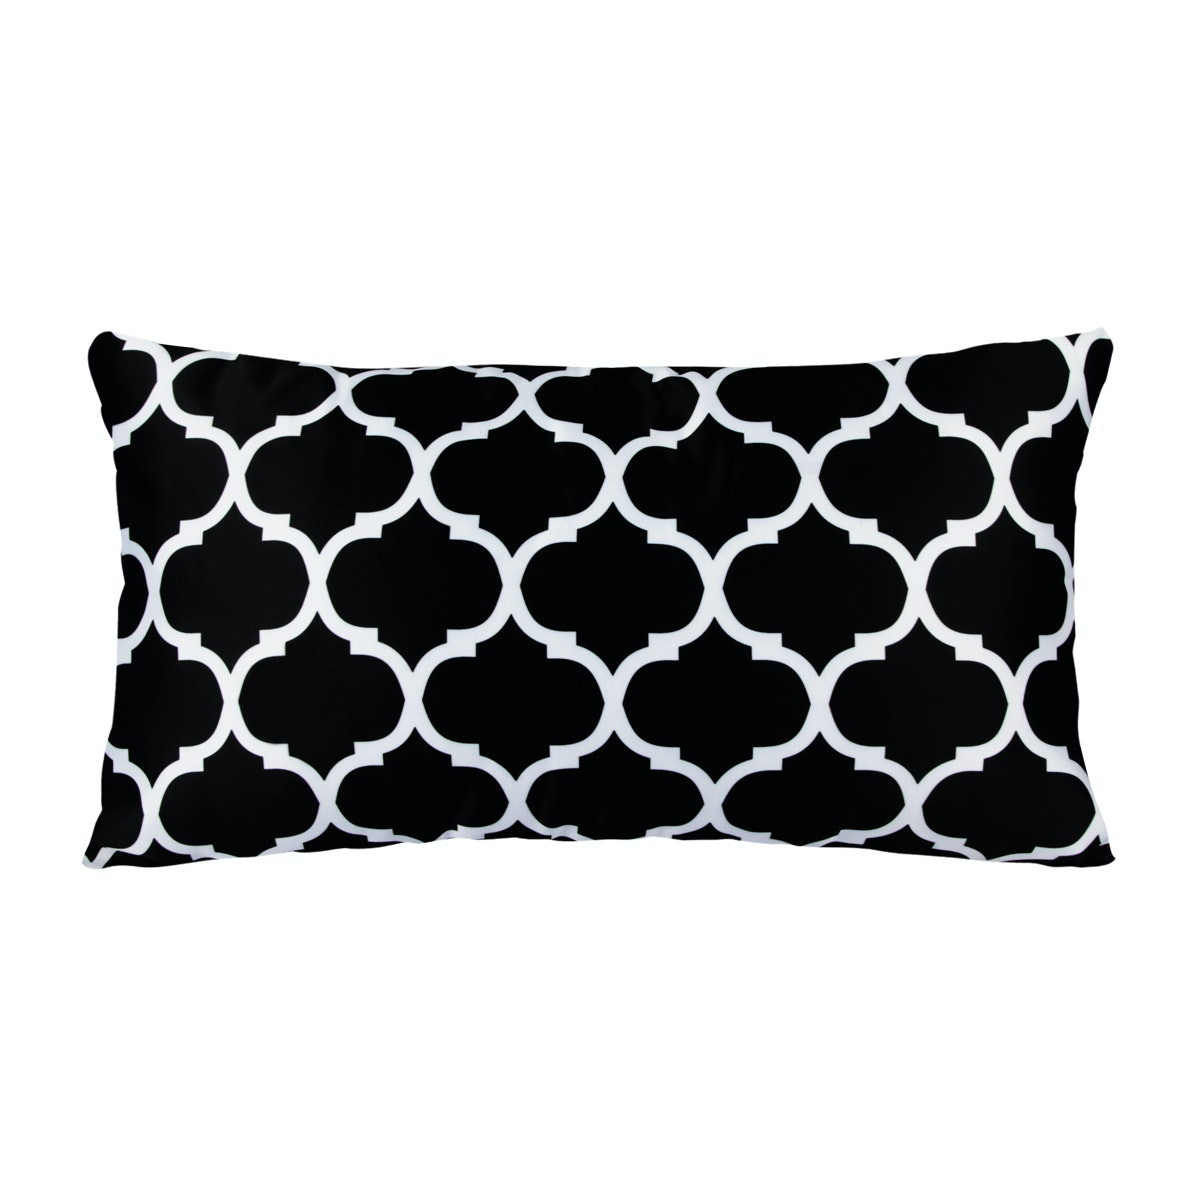 REVOPILLO Moroccan Black Cushion 30cmx50cm